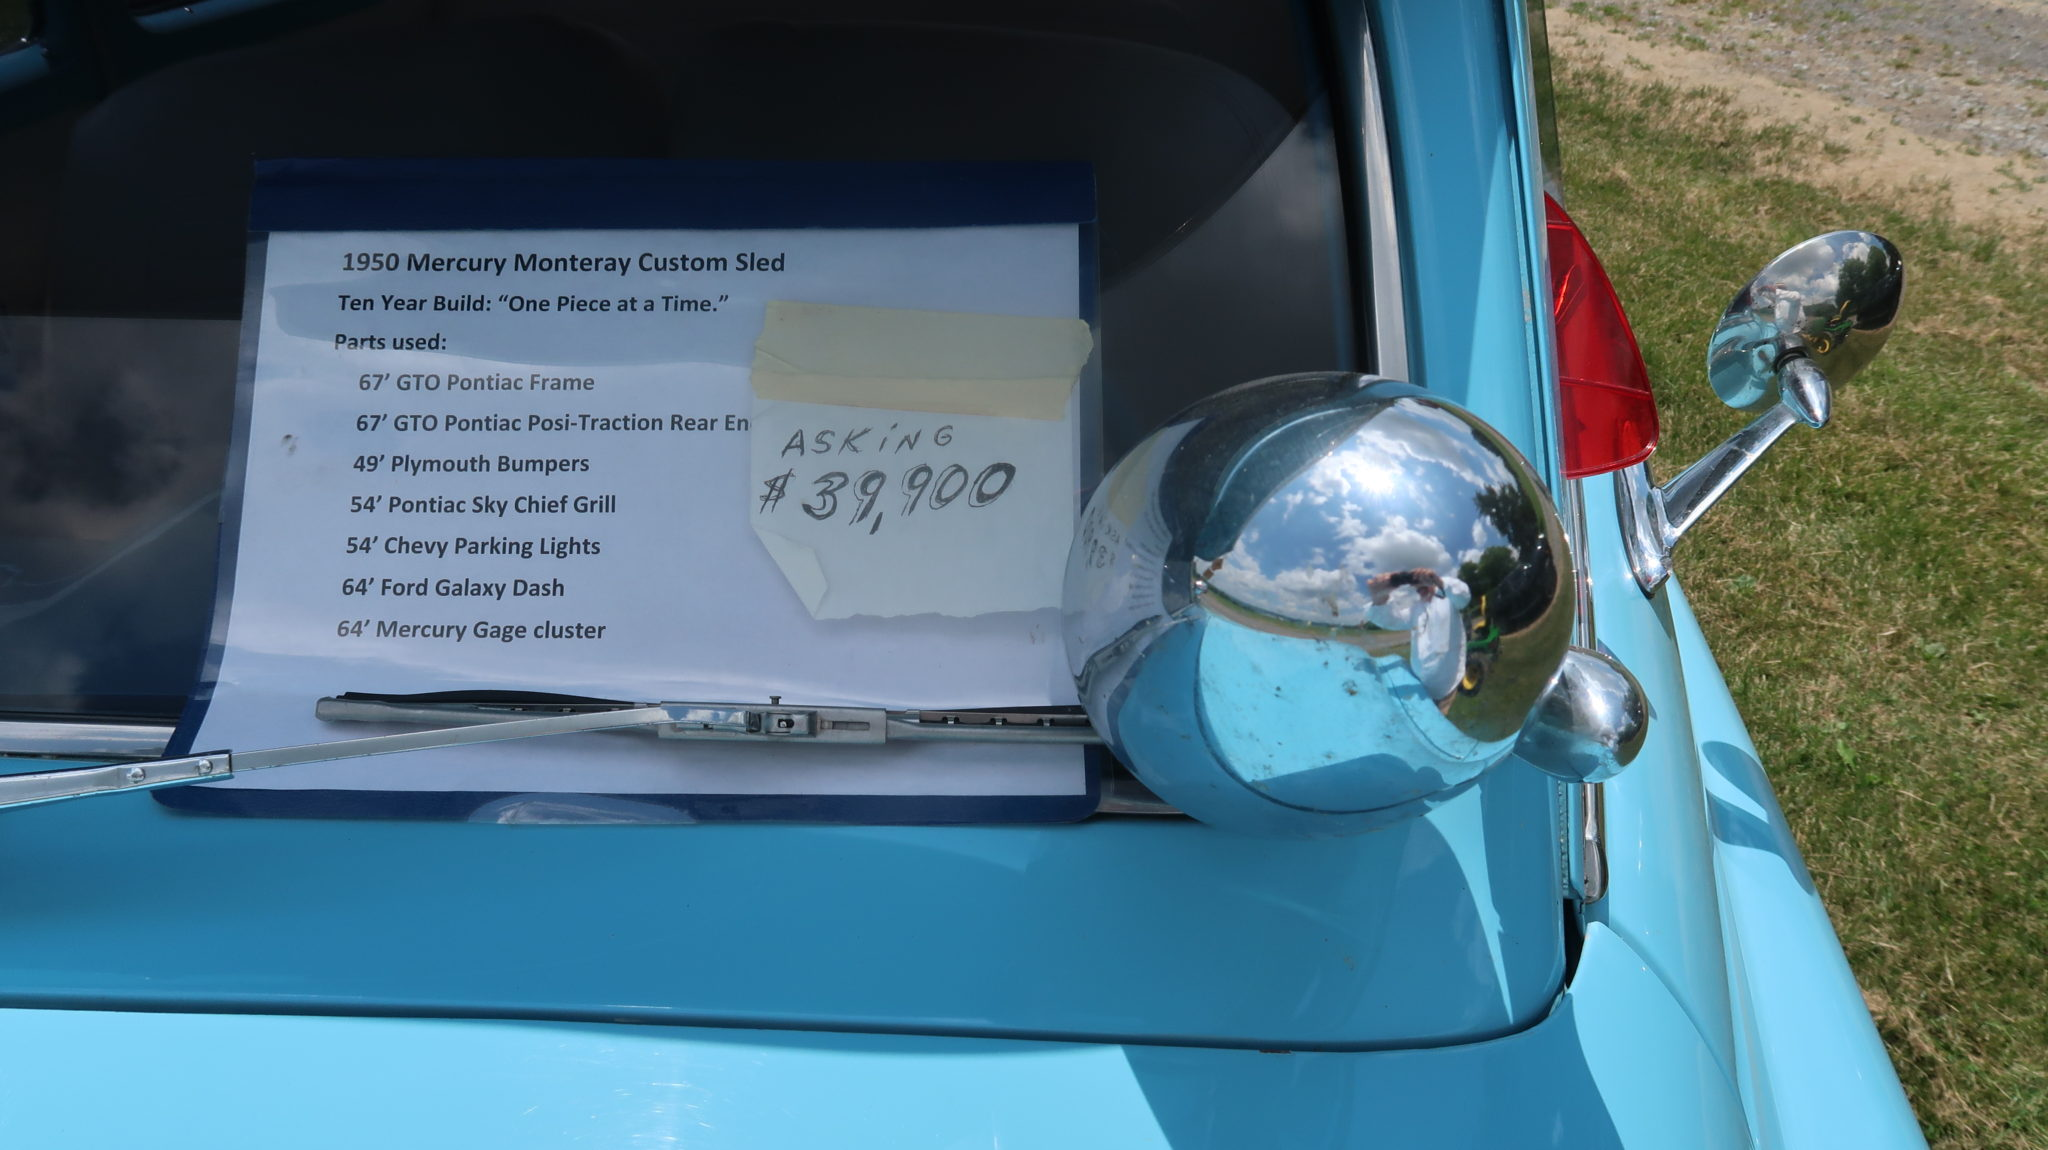 Side of the Road 5: 1950 Mercury Monterey Hot Rod – $39,900